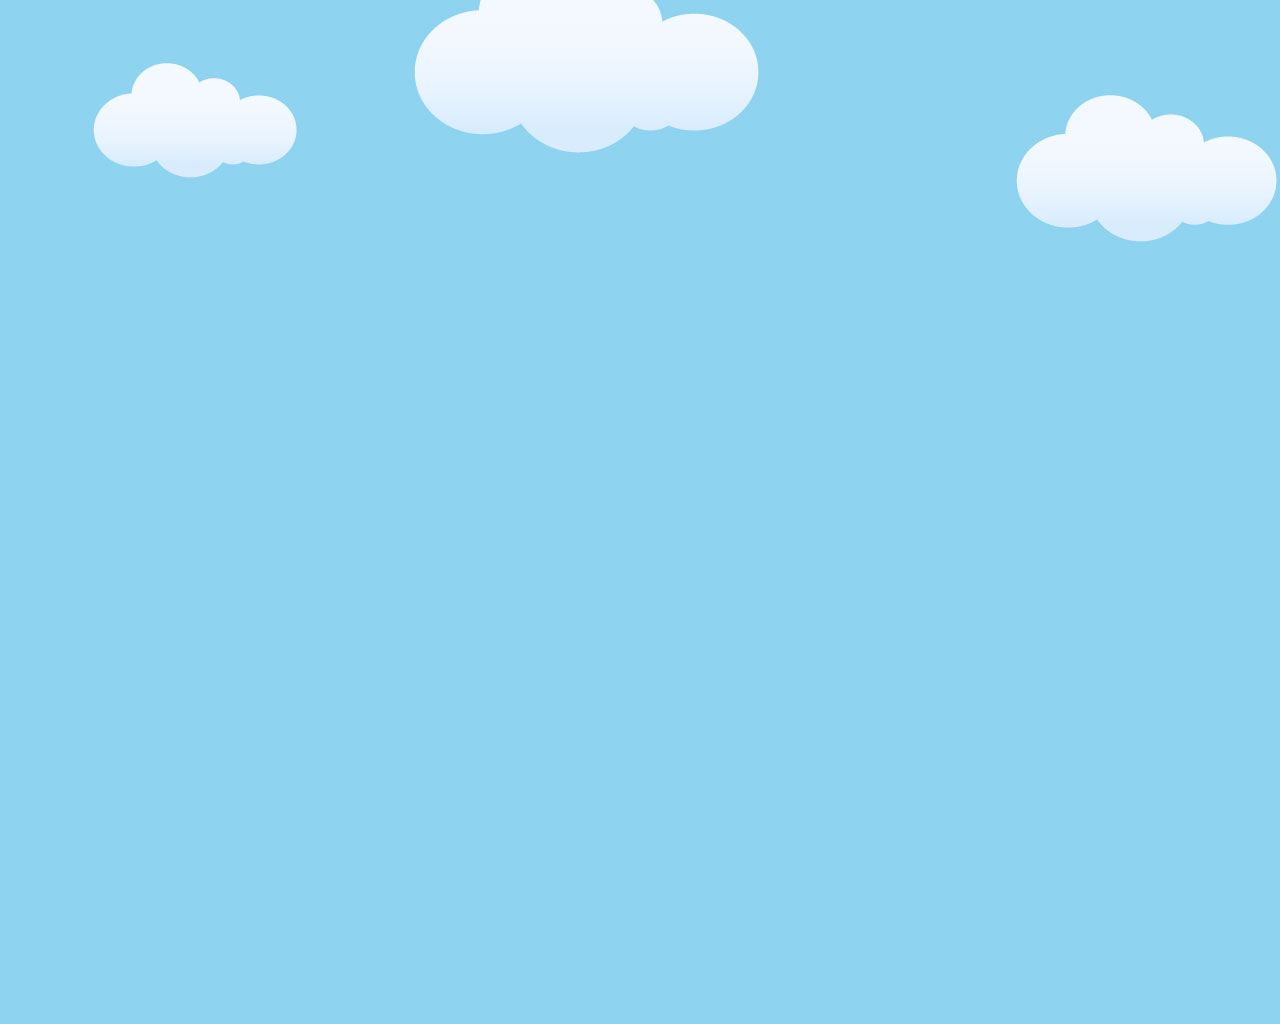 Powerpoint Templates PPT Background, Clouds On Blue Sky For.